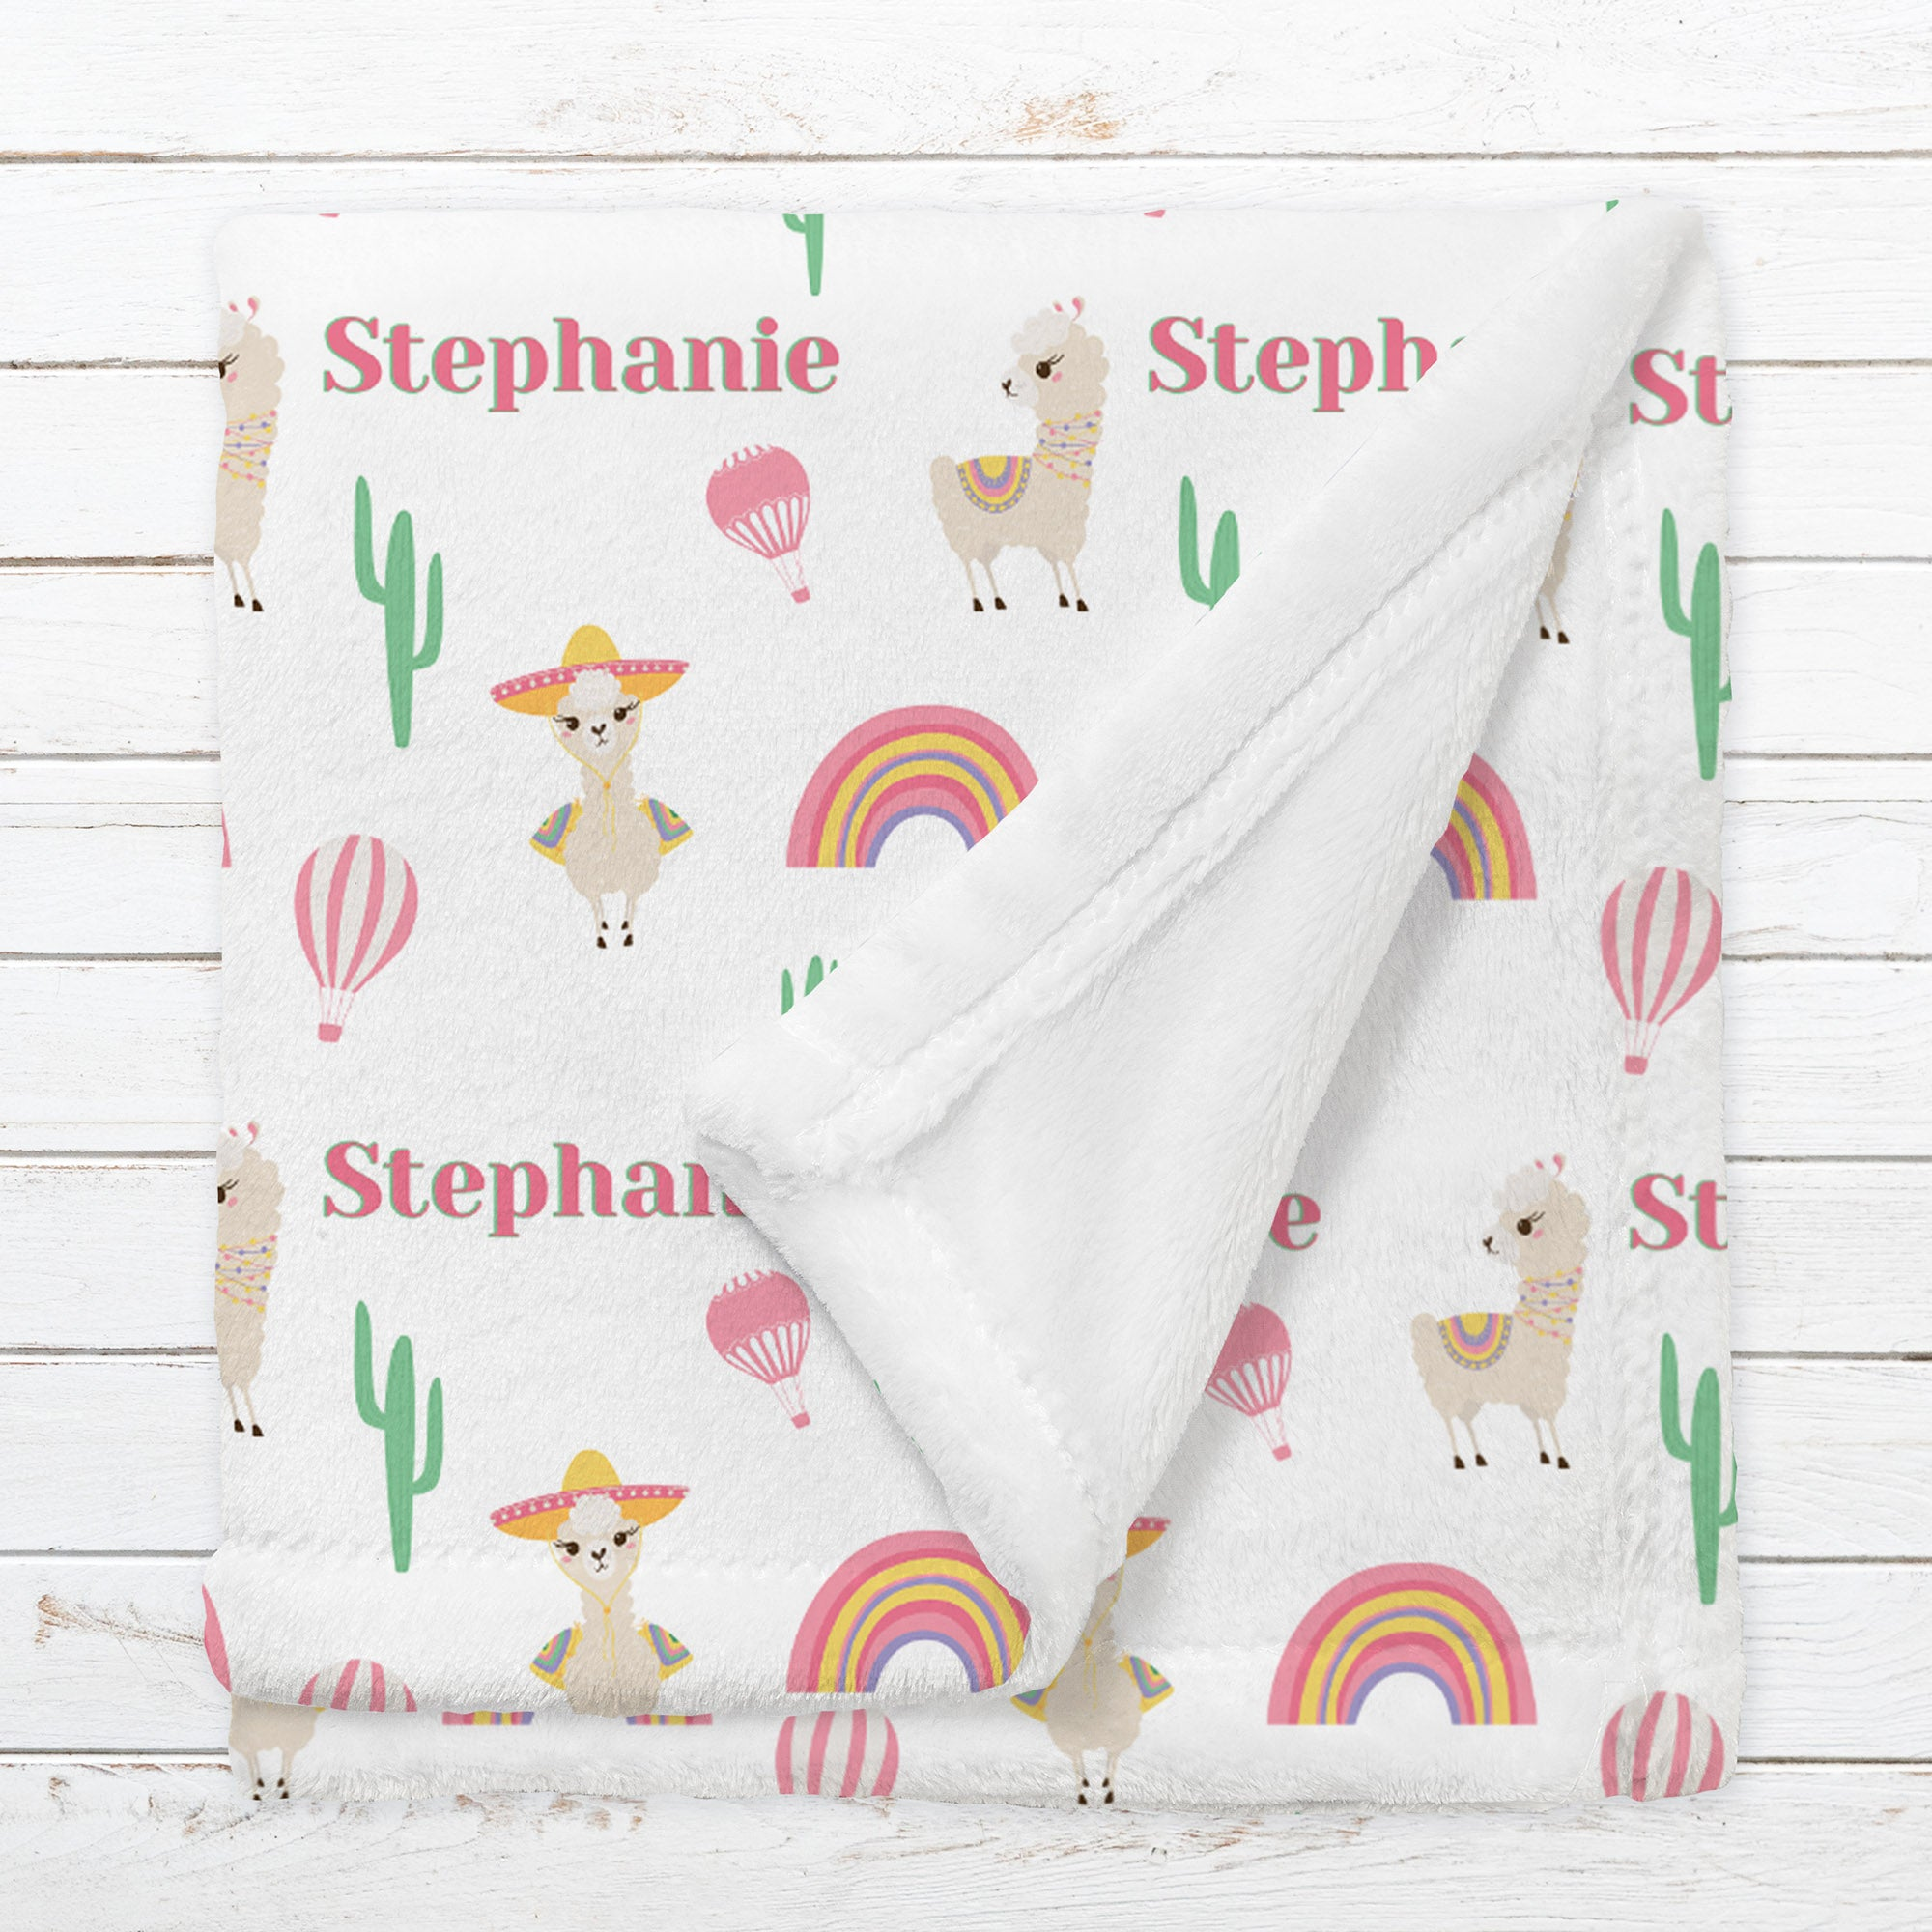 Personalized Llama Blanket for Babies, Toddlers and Kids - Llama's Picnic